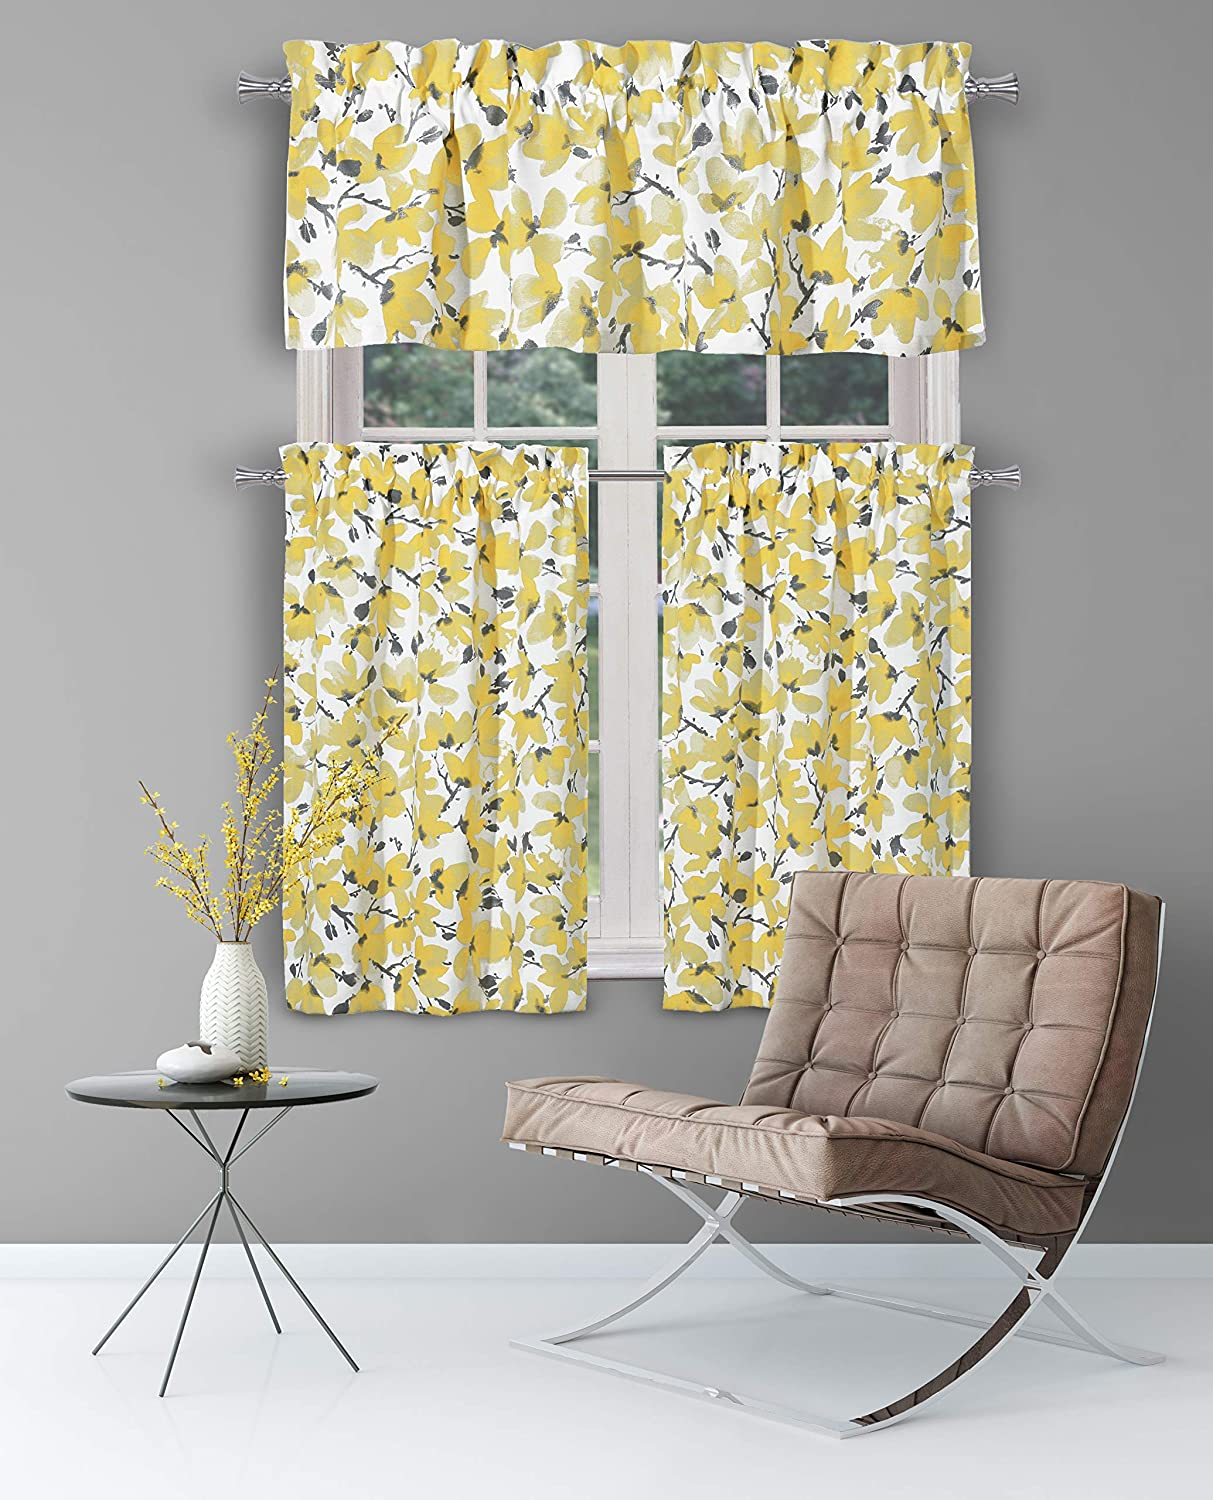 Small Window Curtain for Cafe Margery Paisley Printed Kitchen Tier /& Valance Set Laundry Bath Grey /& Yellow Serafina Bedroom -